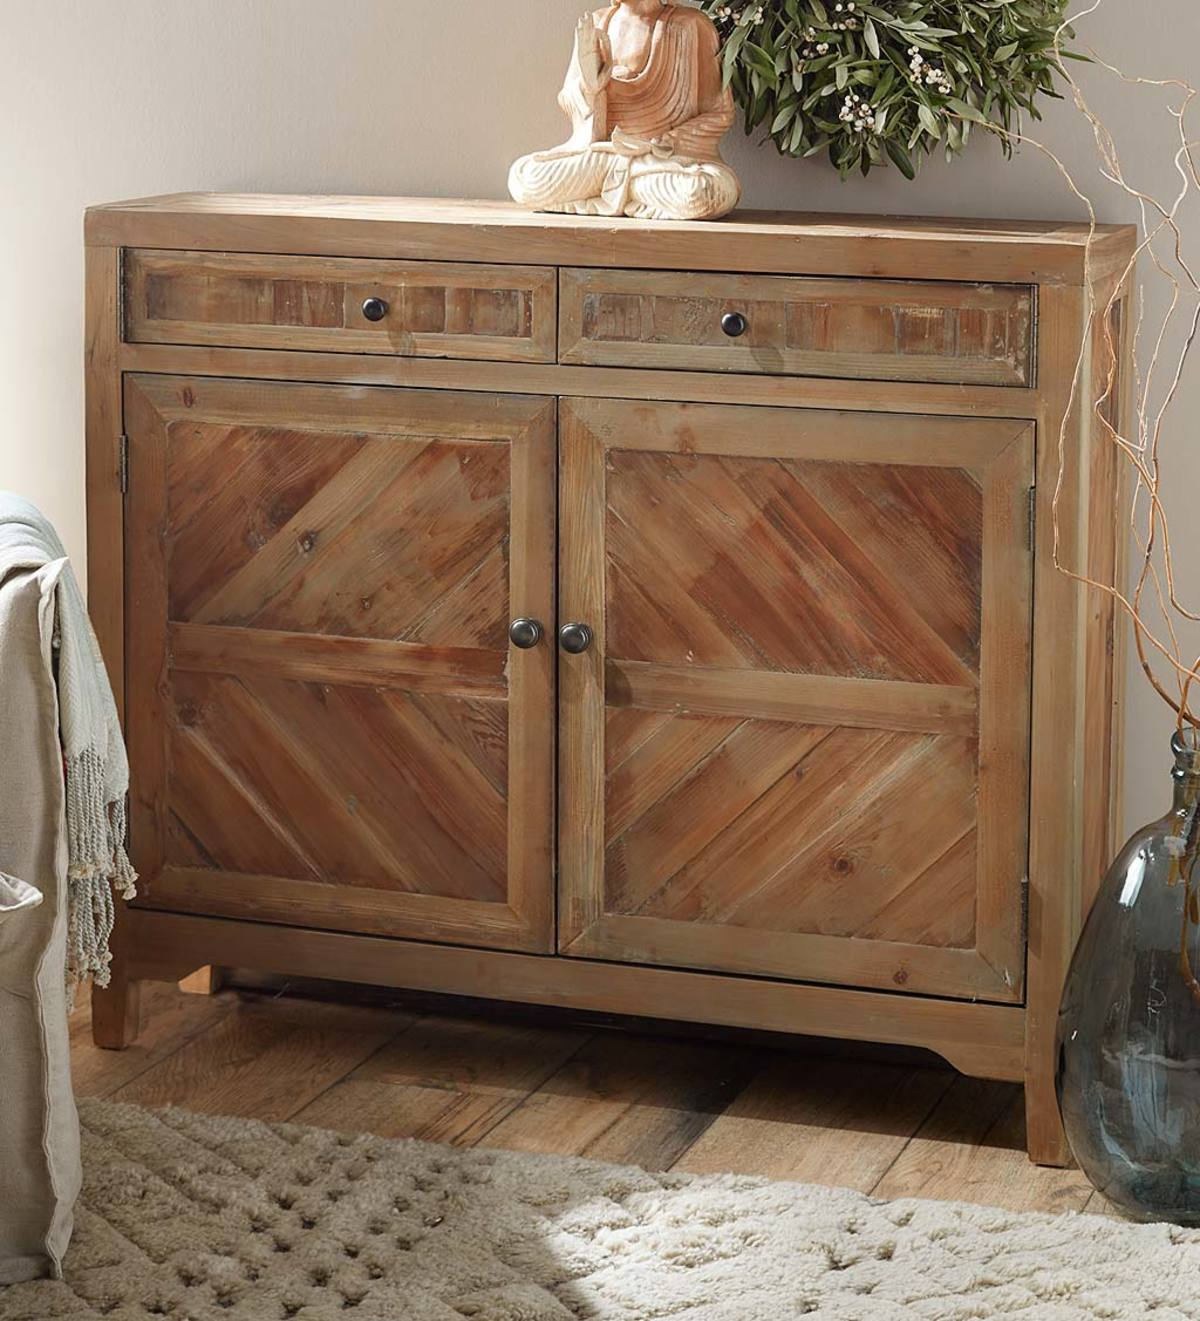 Reclaimed Fir Wooden Console Cabinet